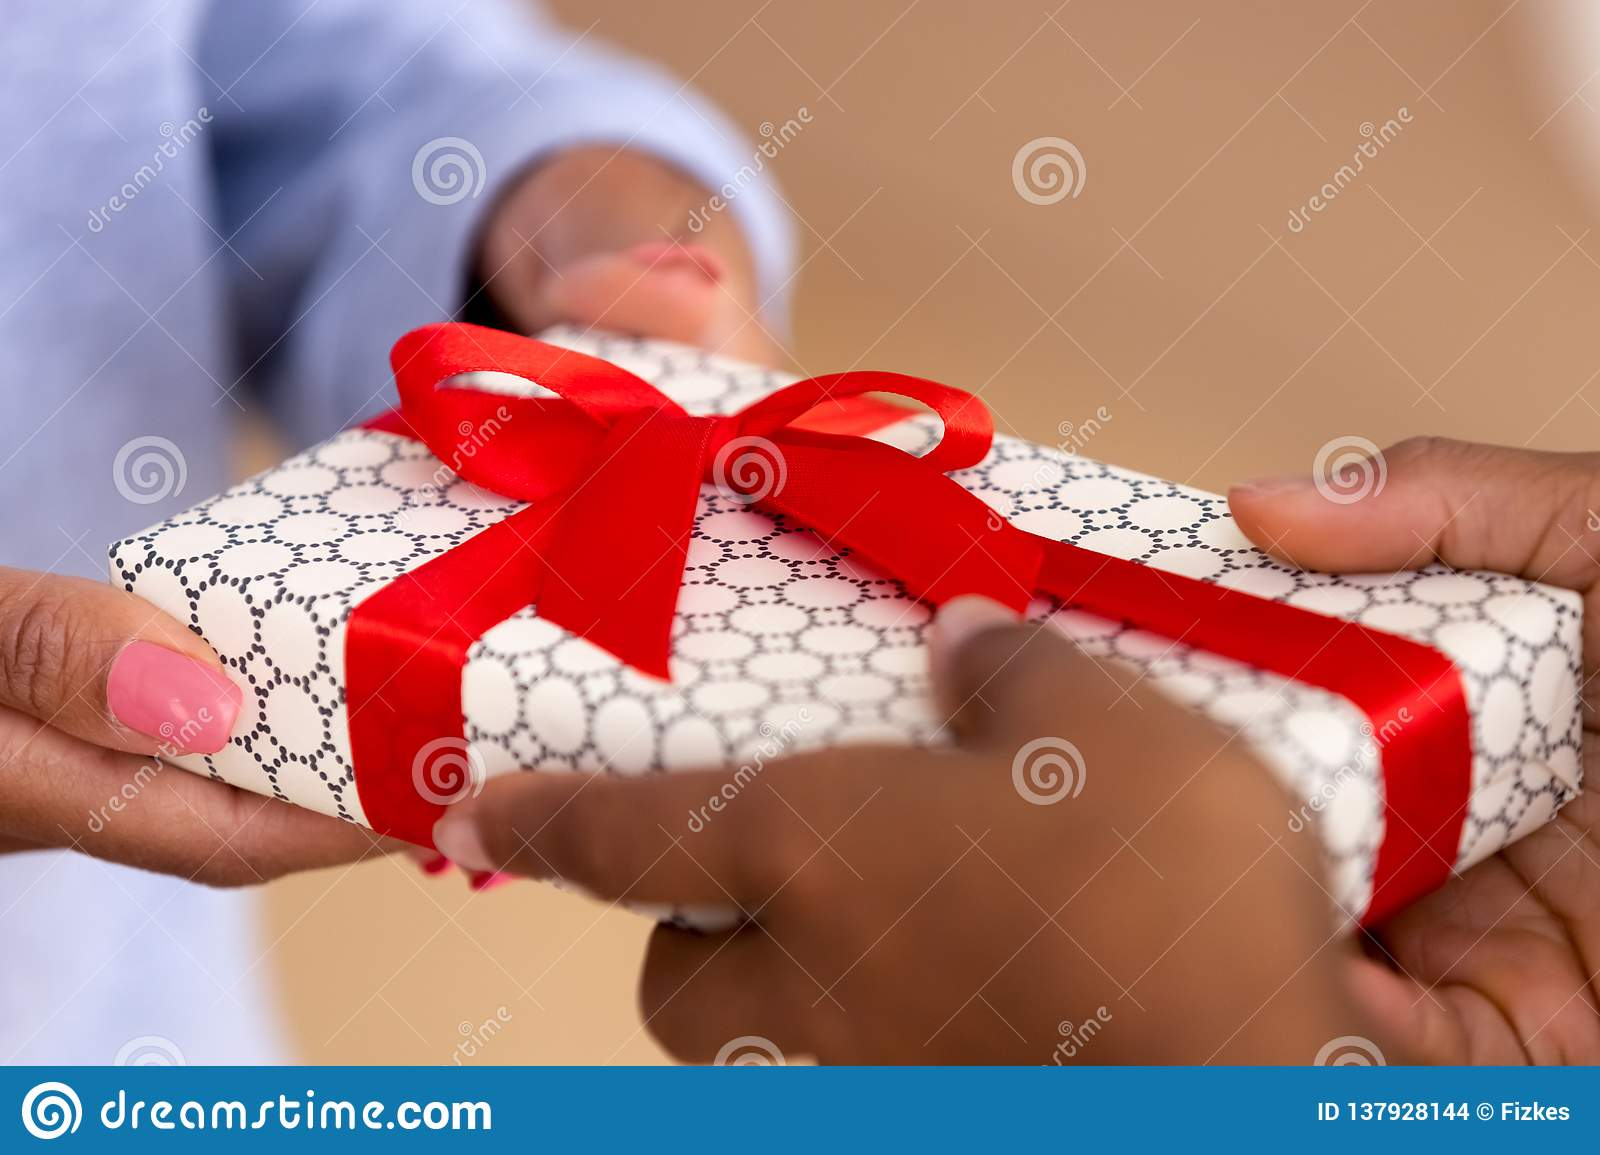 Close Up Of African American Child Holding Box Presenting Gift To Mother Or Friend Black Kid Make Surprise Giving Wrapped Present Mommy